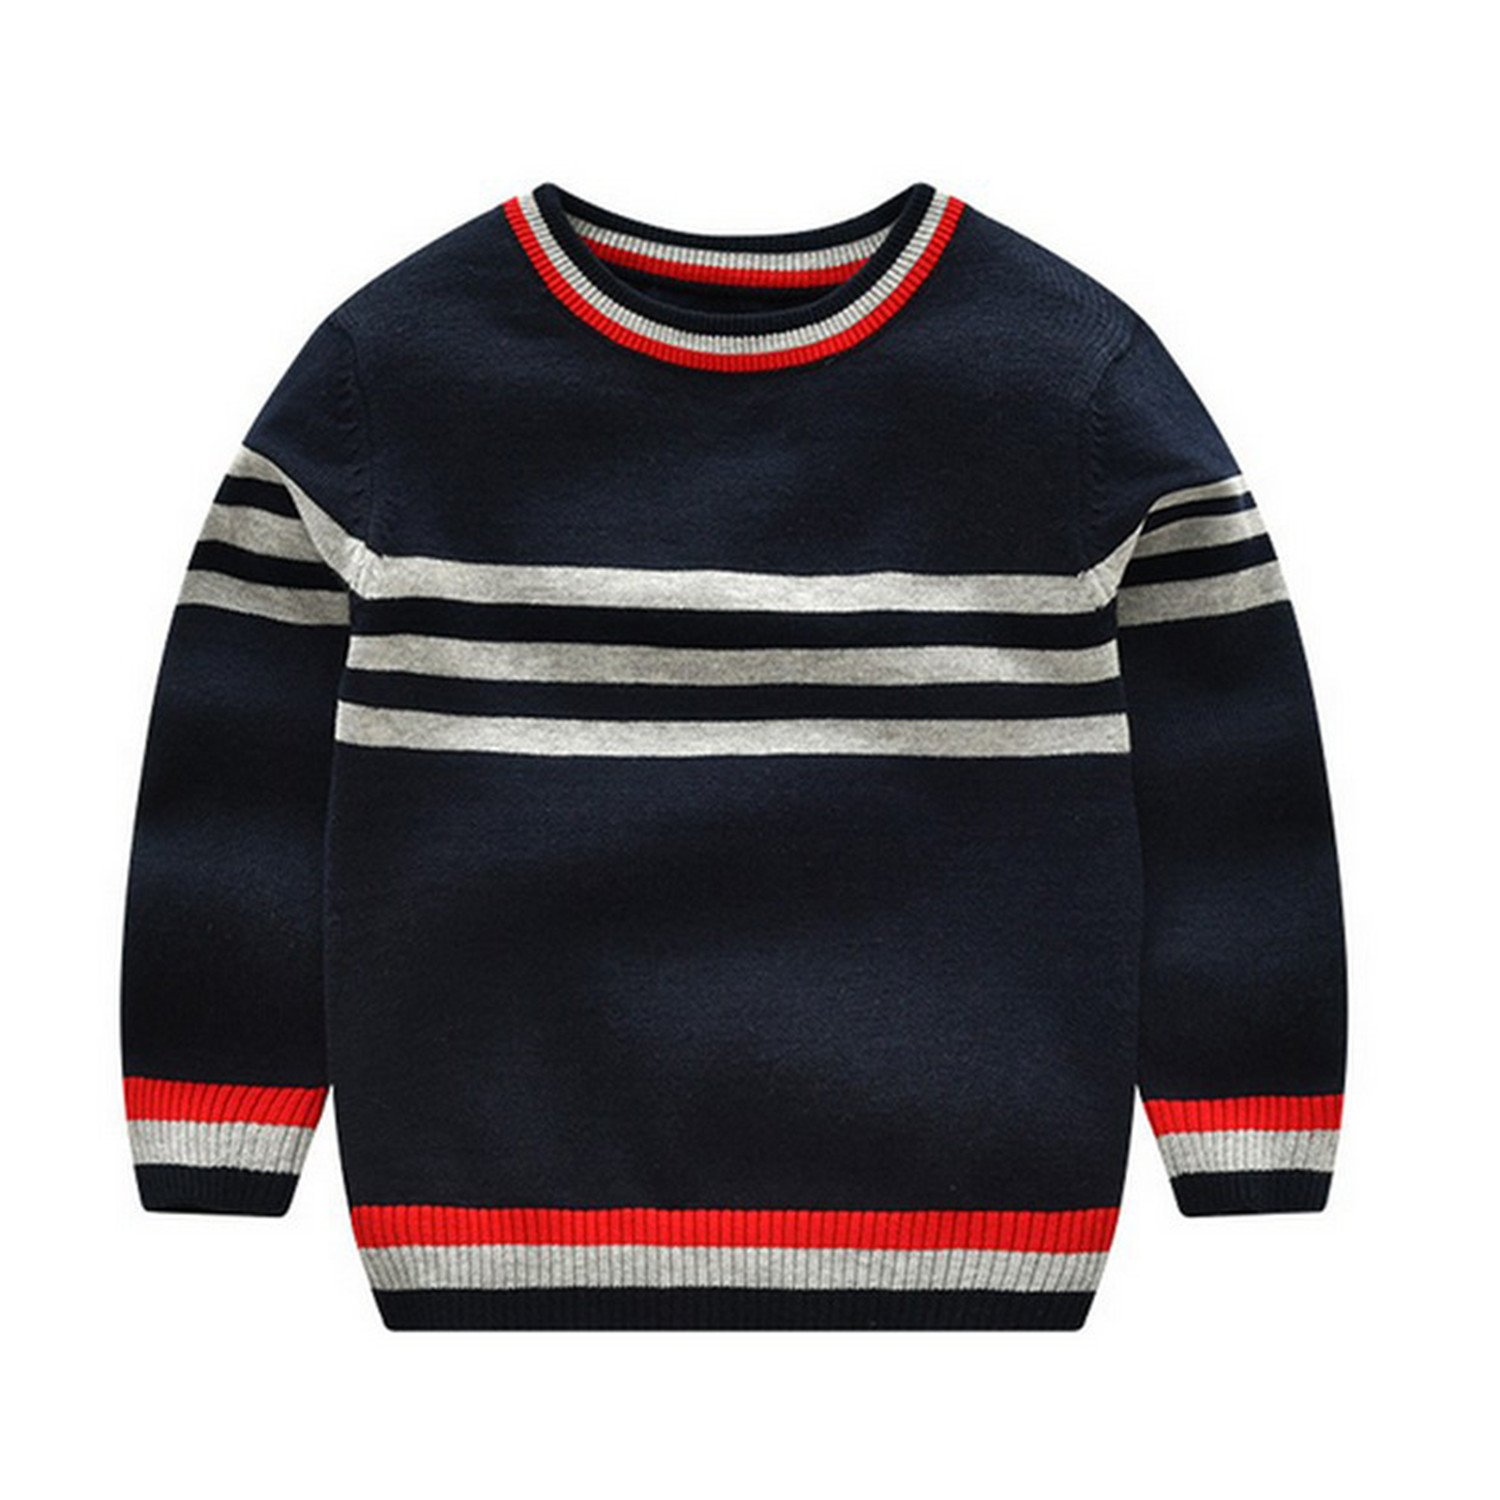 Rick Rogers 3-7Y Stripe Warm Baby Sweater Solid Color Cotton Boys Sweaters Soft Breathable Pollover Knitted Tops